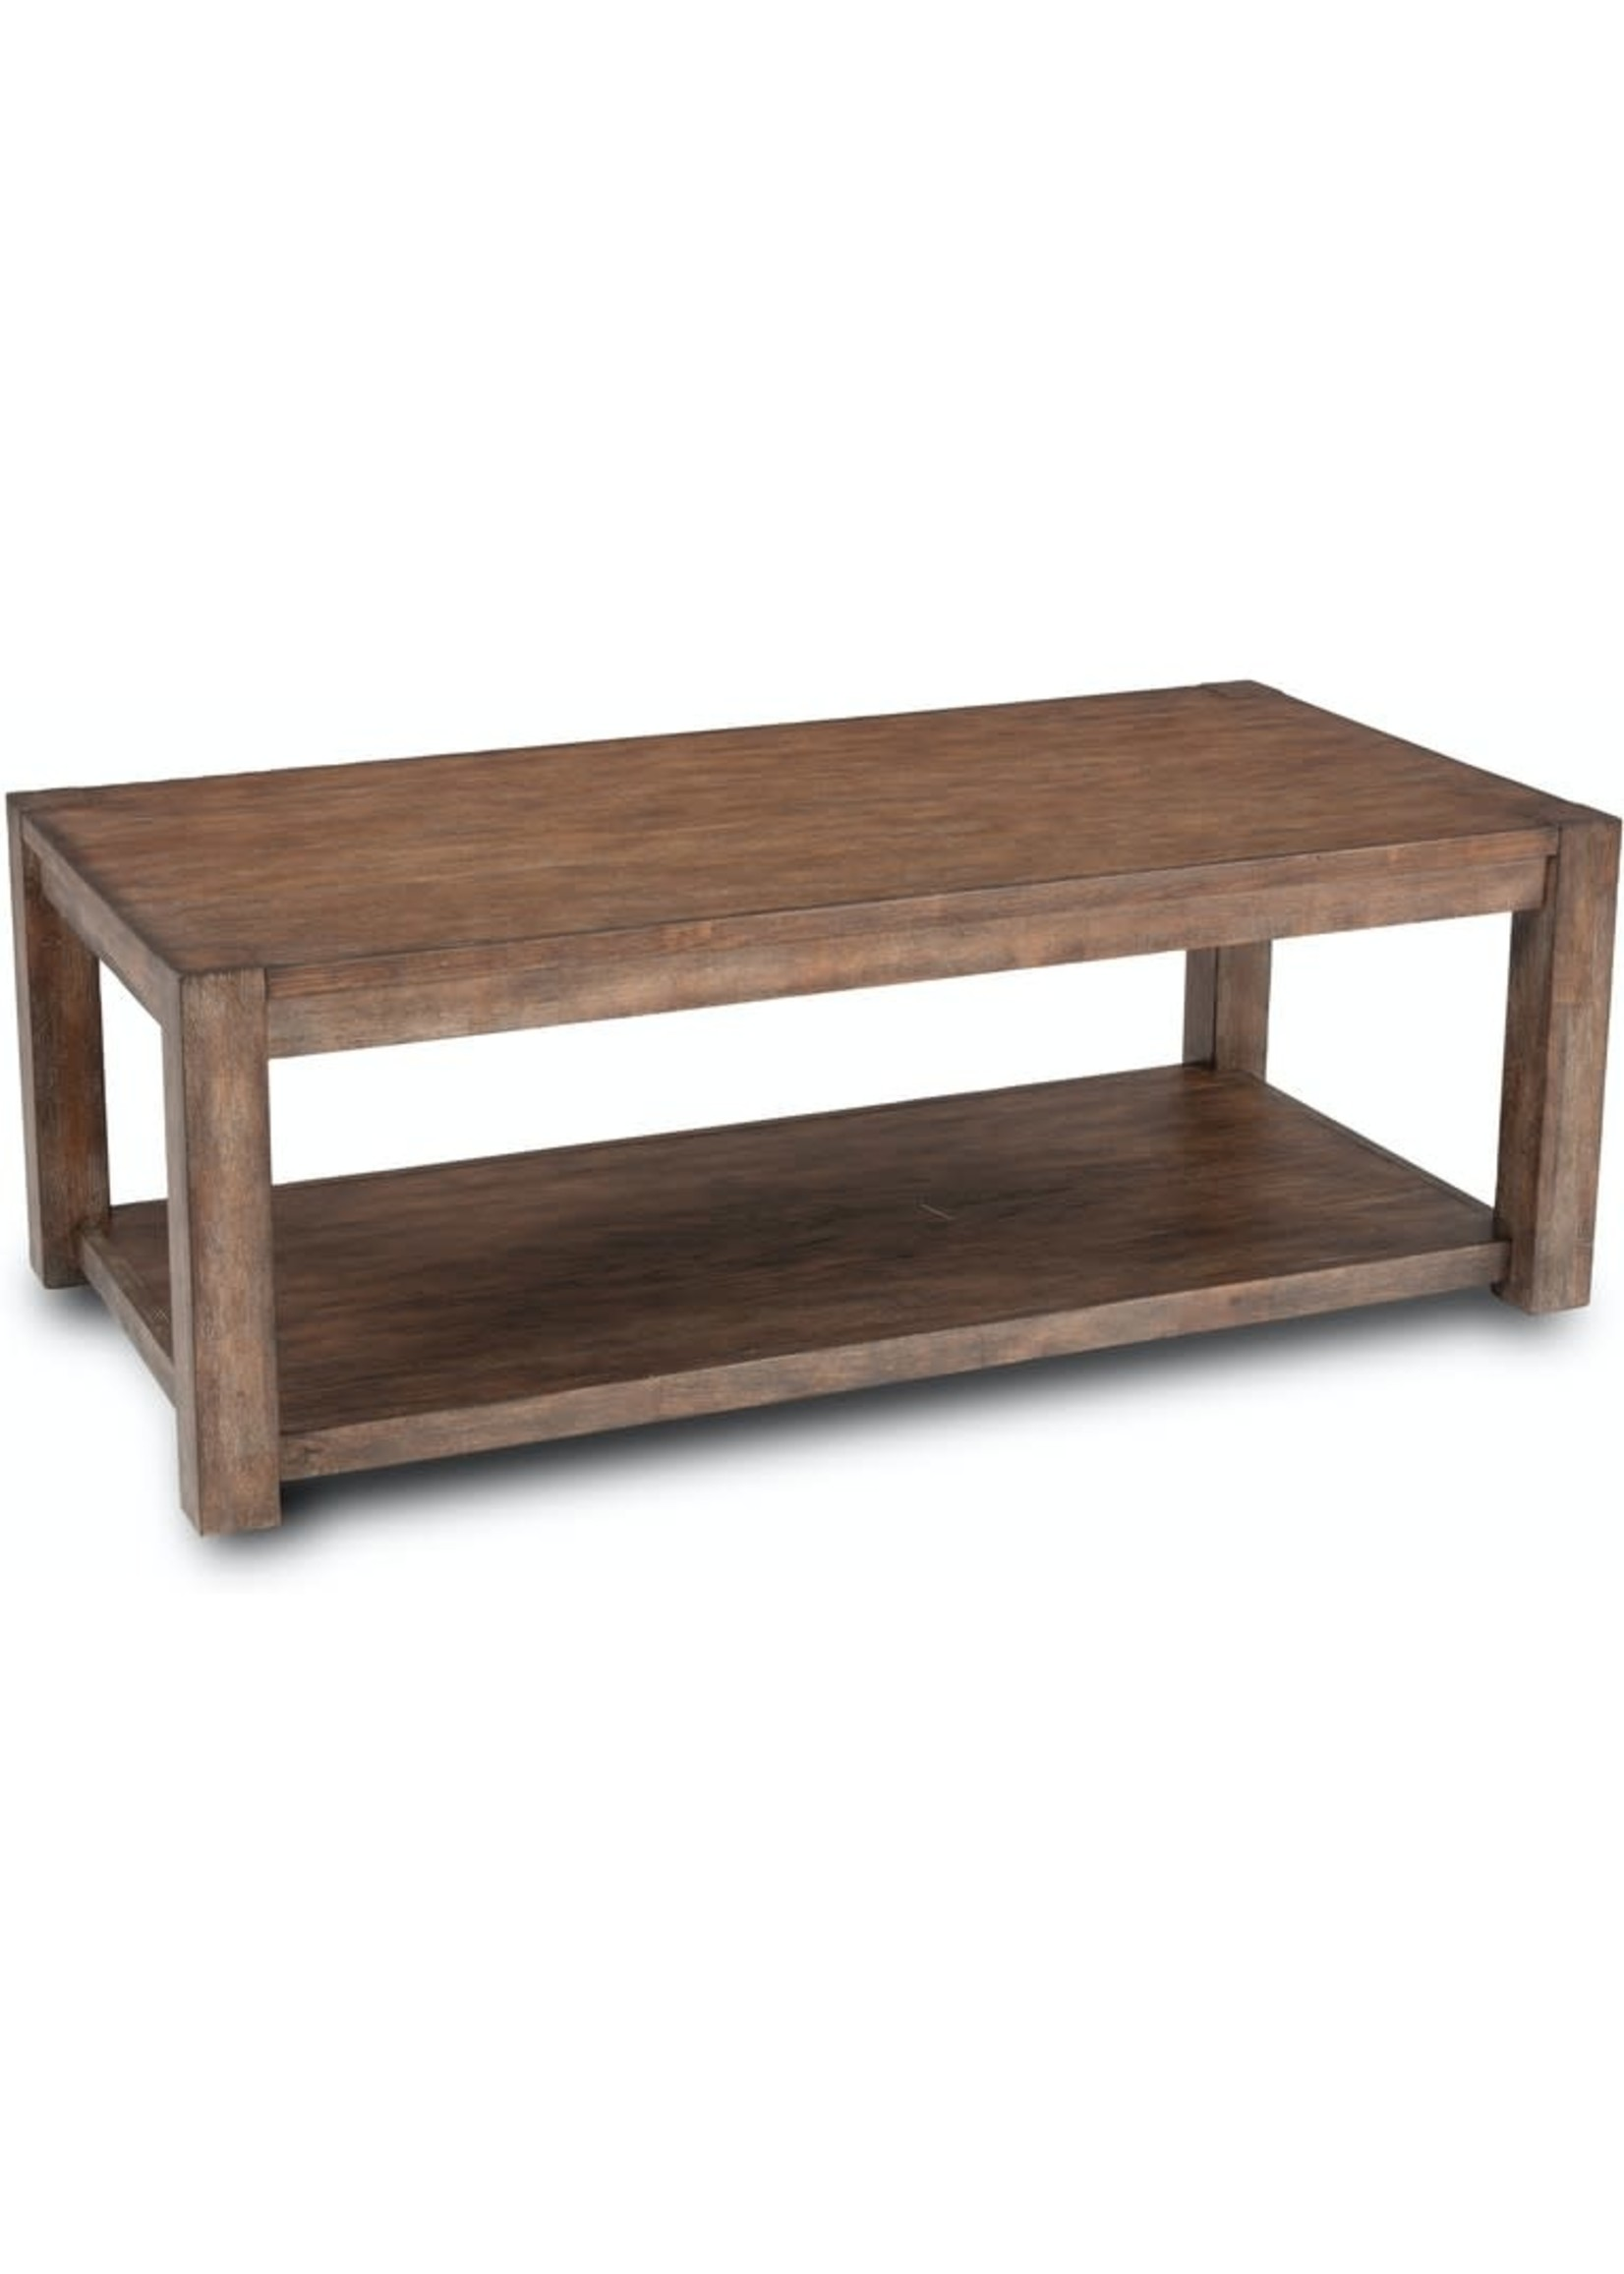 BOULDER RECTANGULAR COFFEE TABLE W/ CASTERS